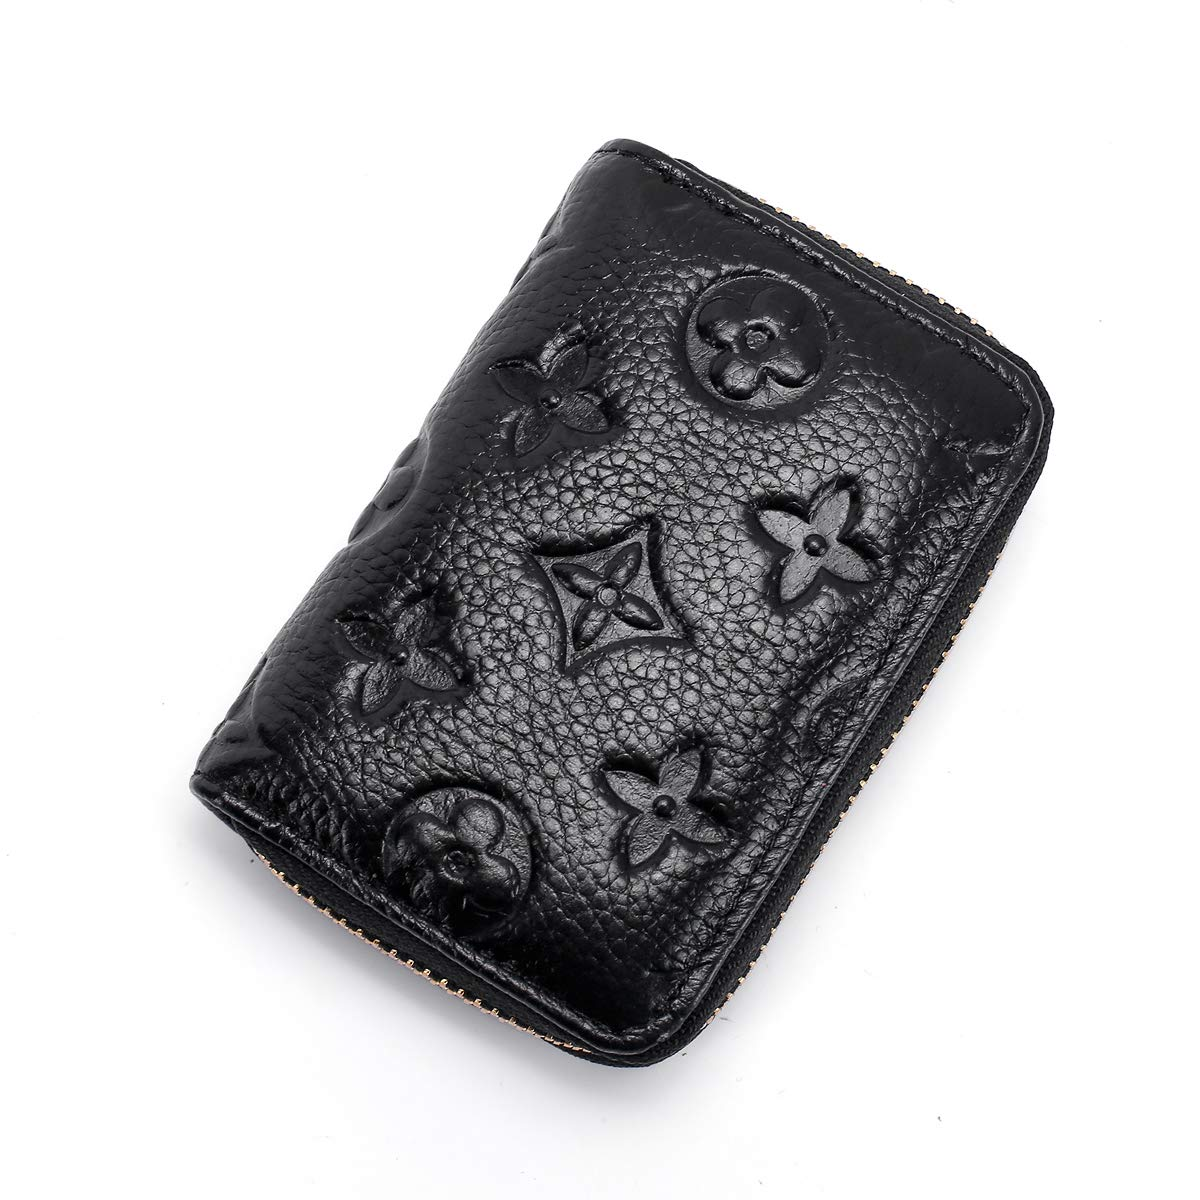 Auner Womens Wallet RFID Blocking Genuine Leather Multi Credit Card Holder Zipper Small Wallets - Black by Auner (Image #1)